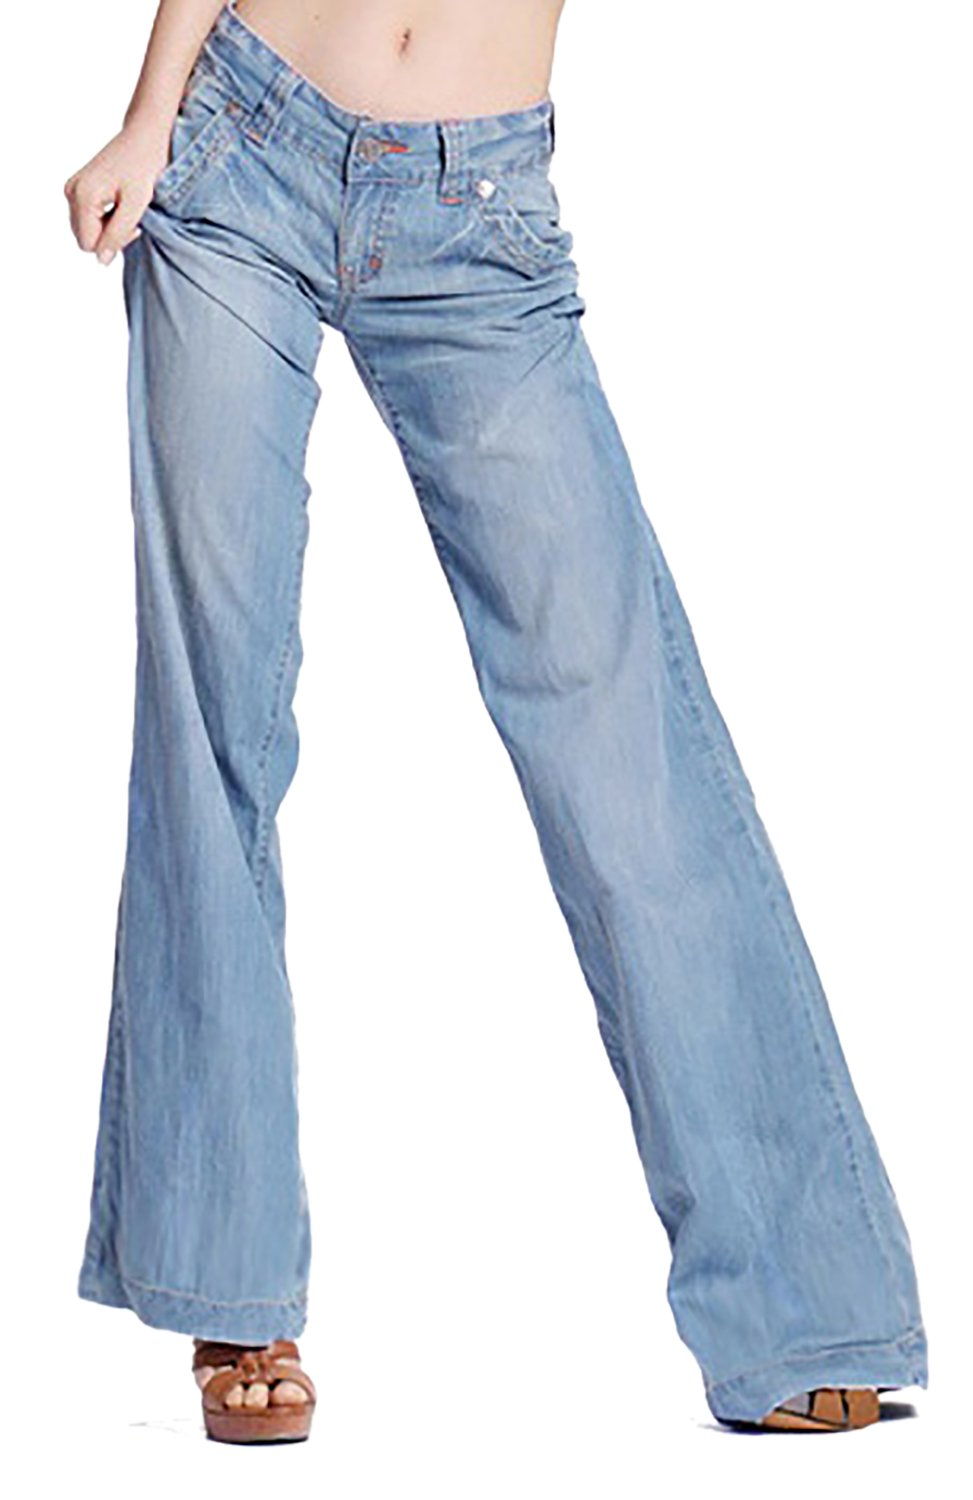 Women's Fashion Light Blue Loose Curvy Bootcut High Waist Straight Fit Jeans 12 by GARMOY (Image #2)